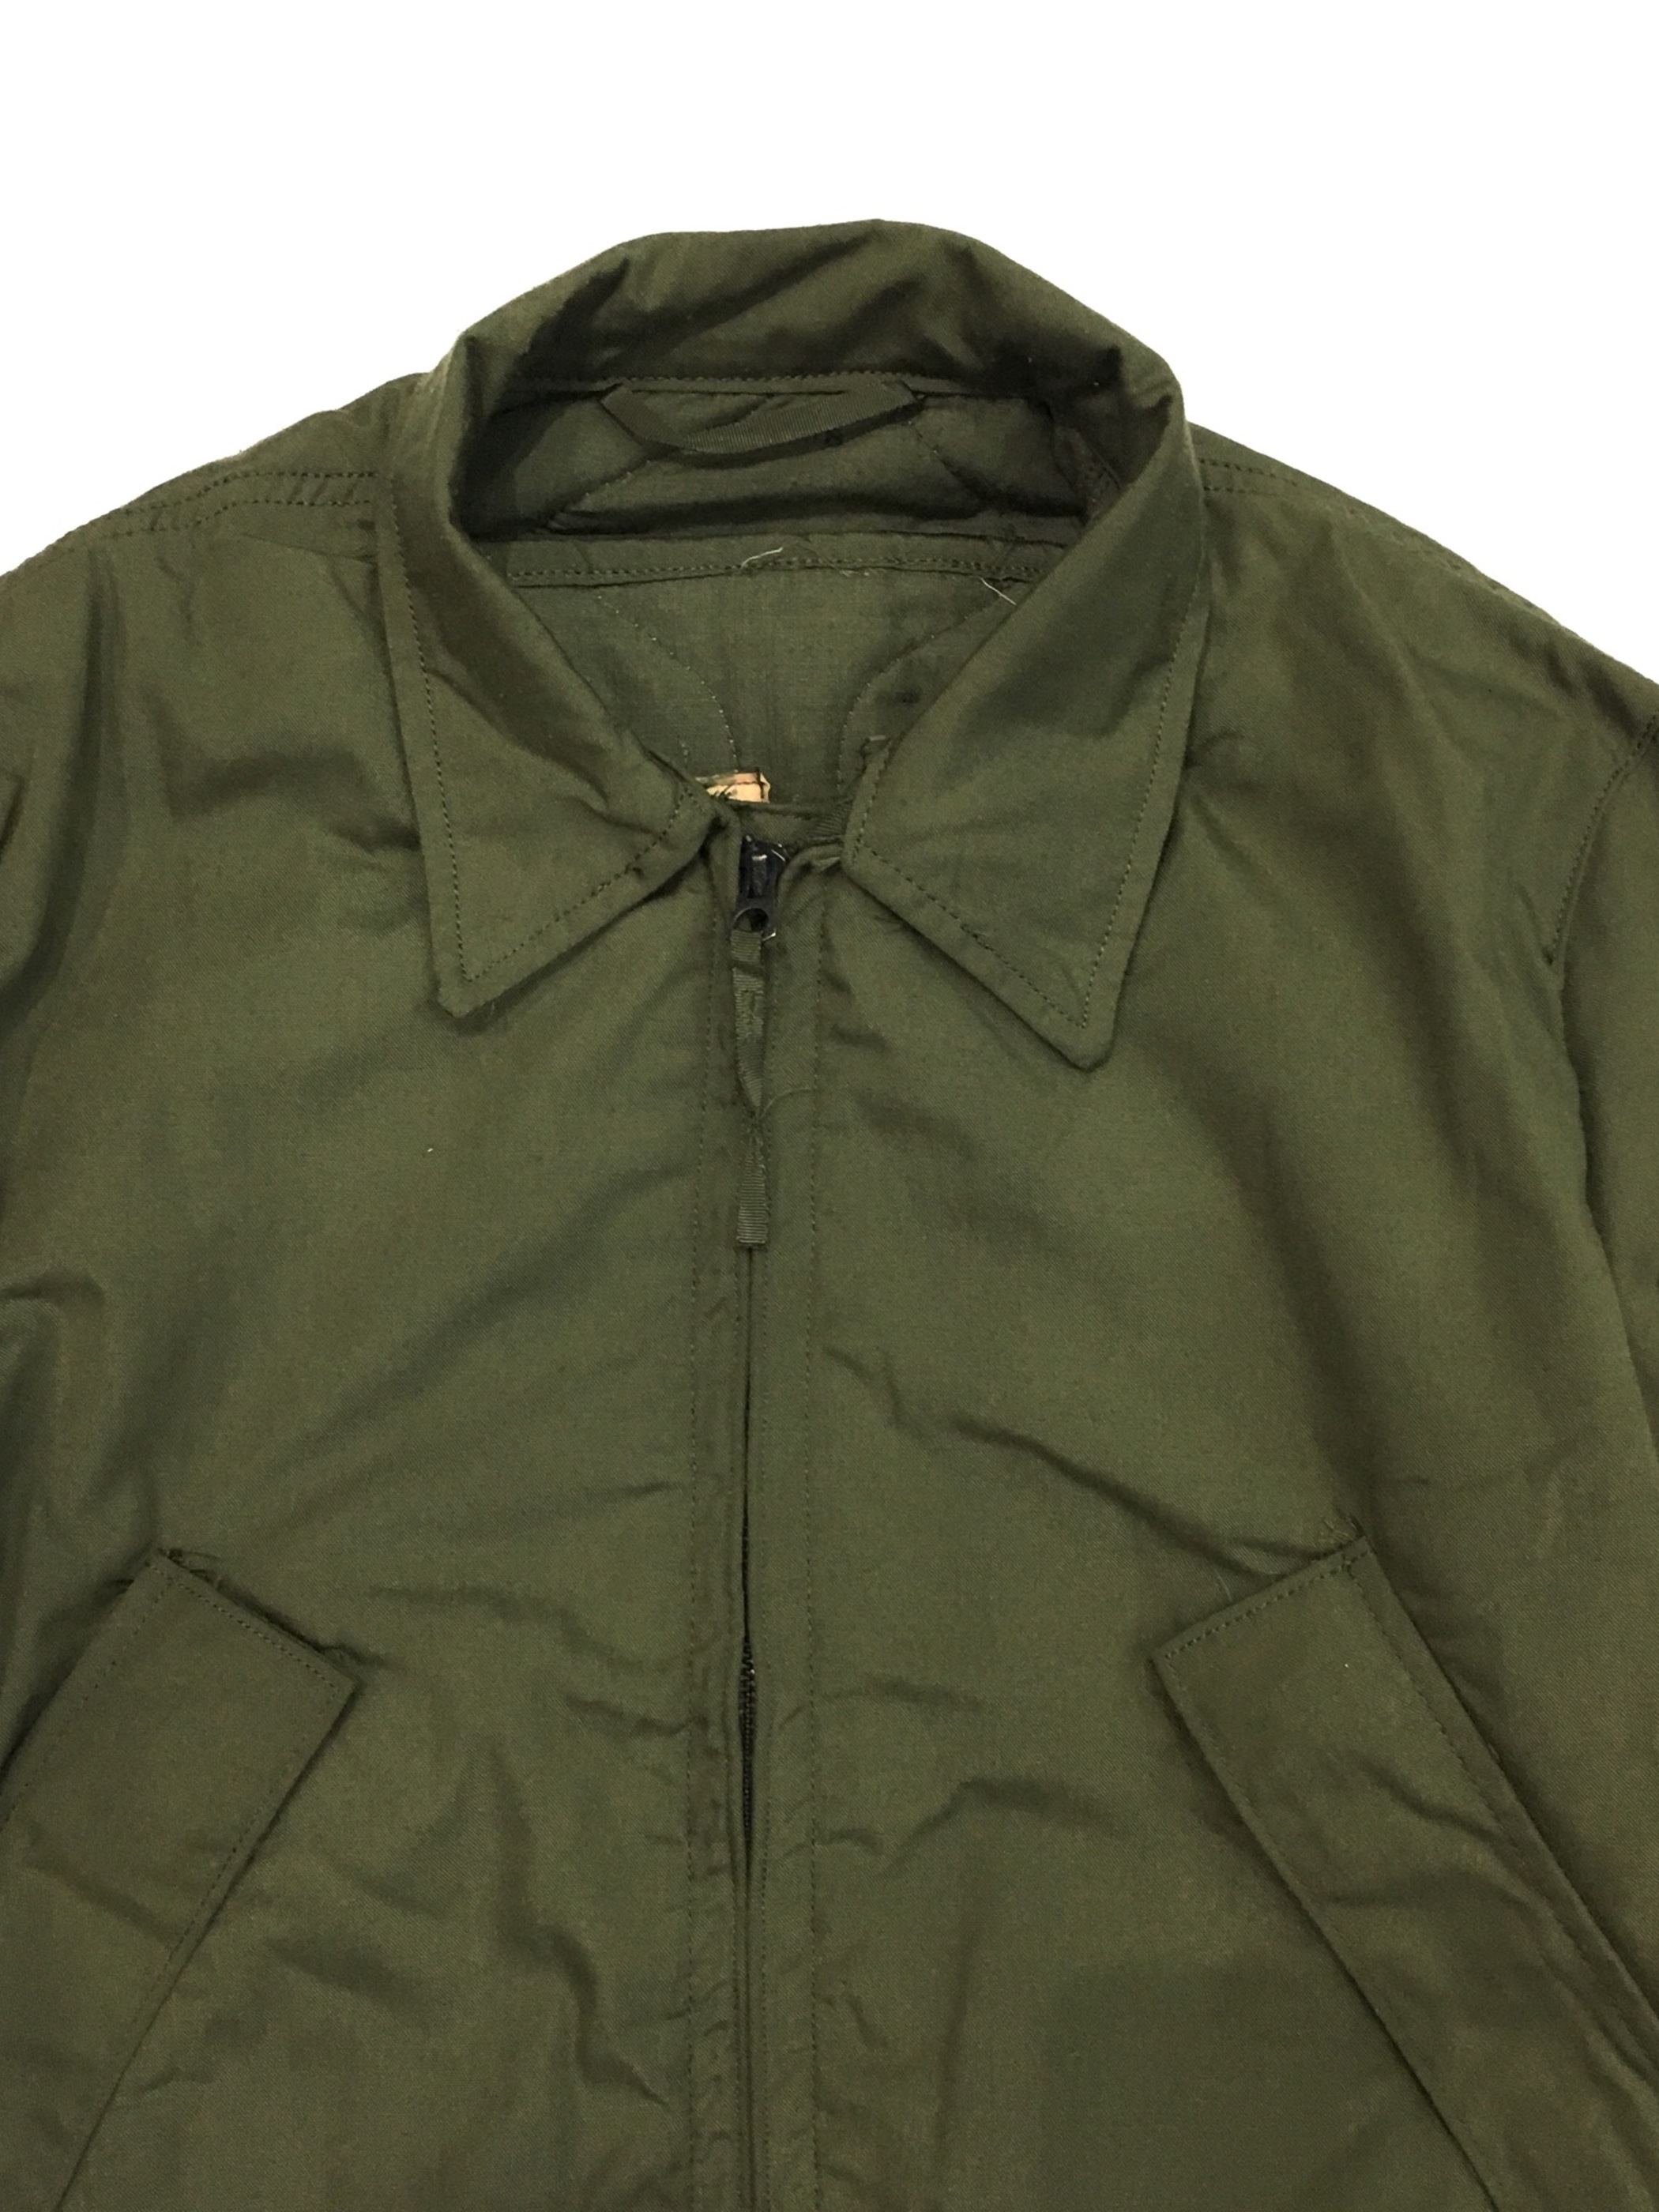 80's U.S.ARMY CVC JACKET(HIGH TEMPERATURE RESISTANT)